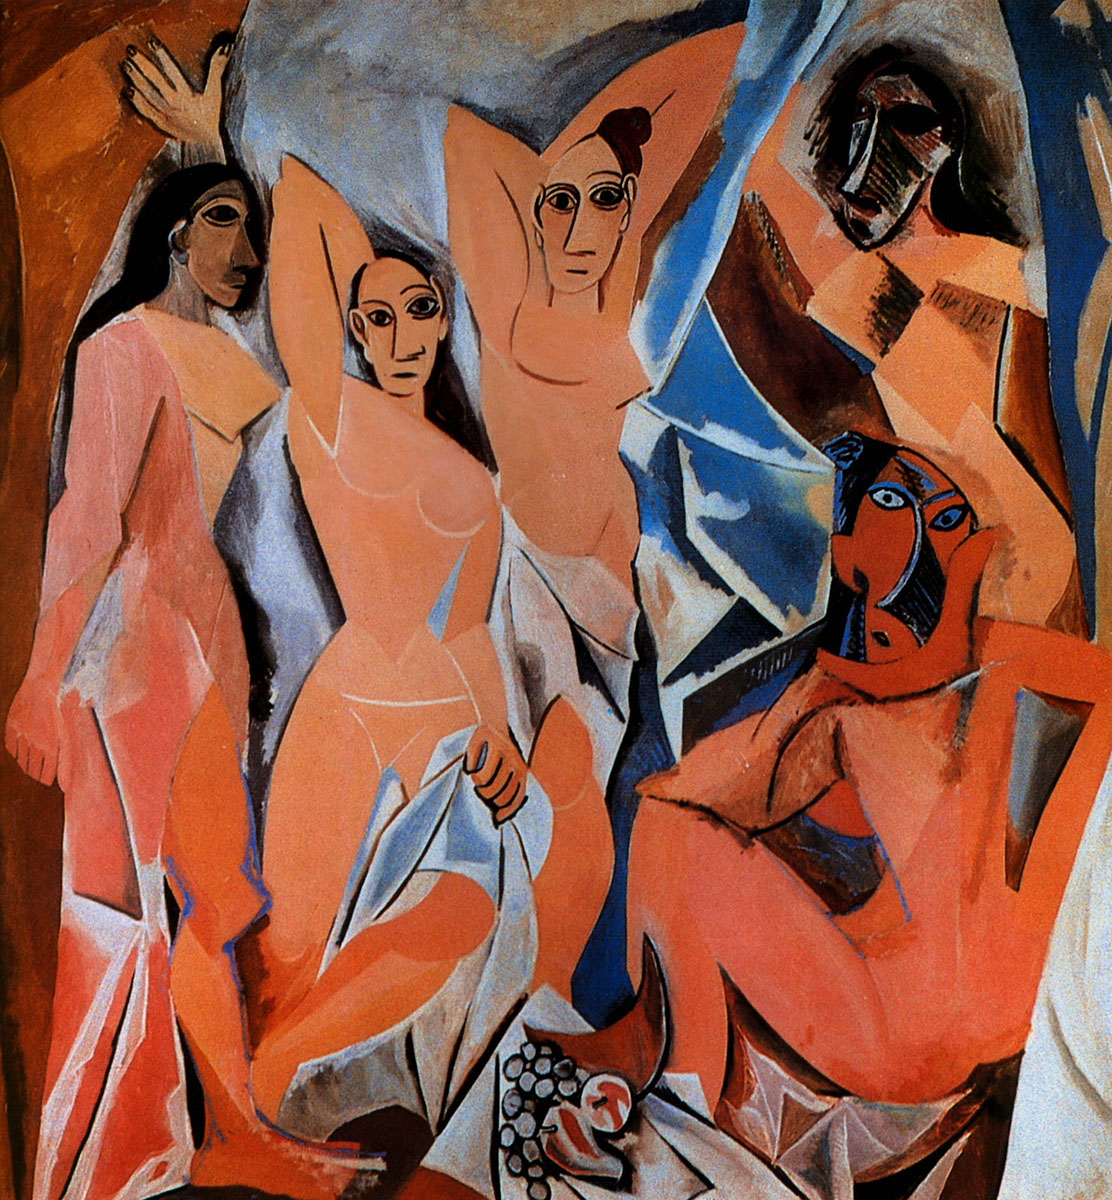 Pablo Picasso – The young ladies of avignon